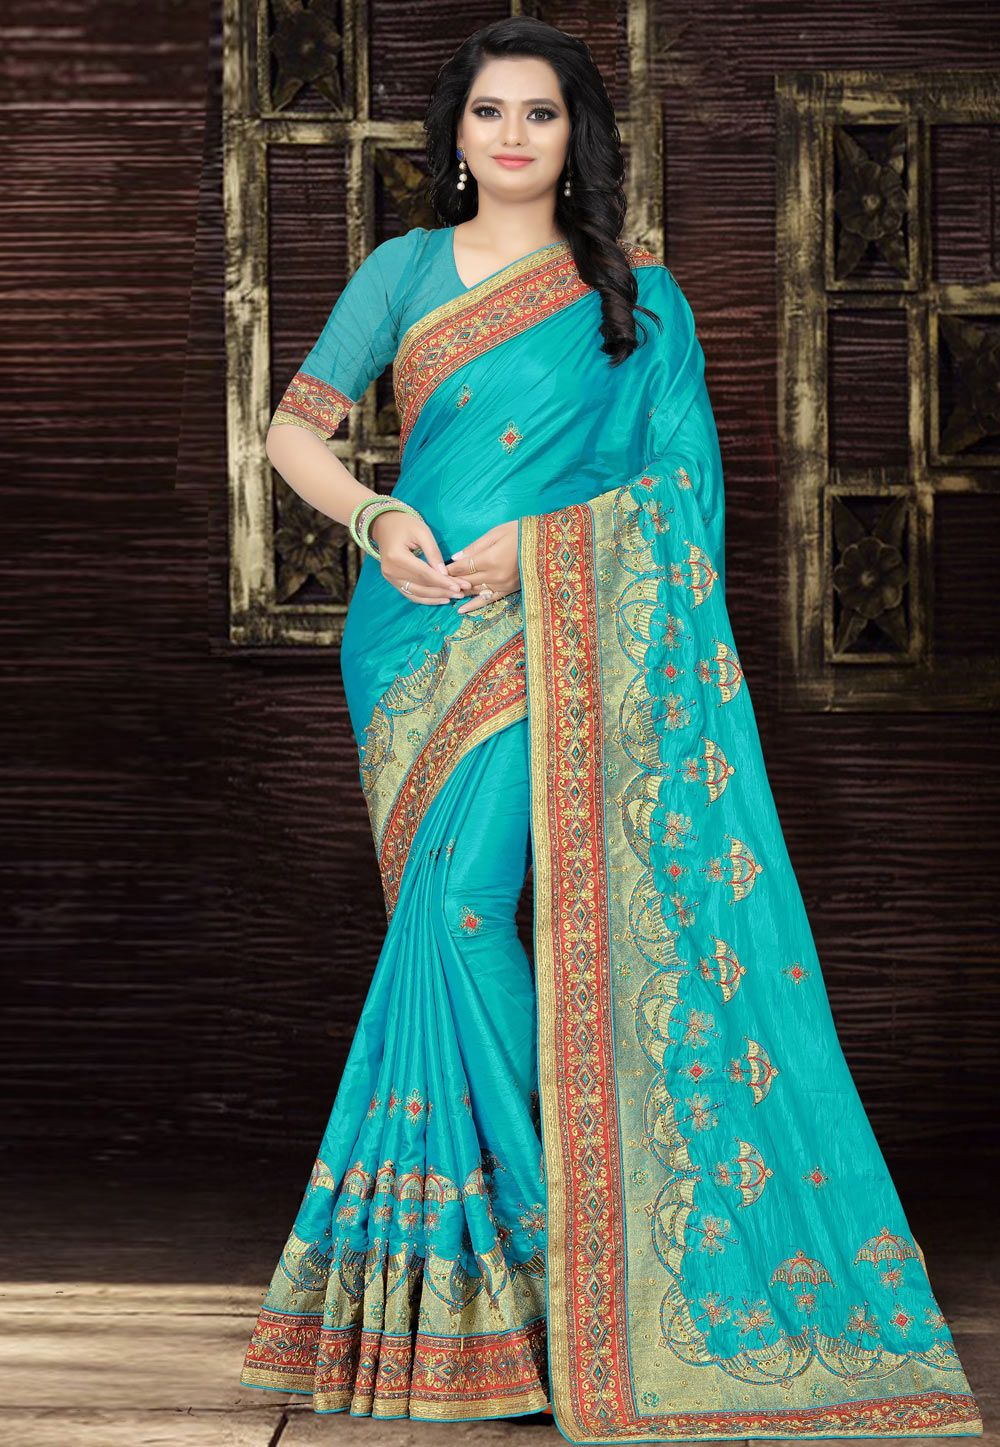 458216fc322f4 Buy Aqua Silk Embroidered Saree With Blouse 165260 with blouse online at  lowest price from vast